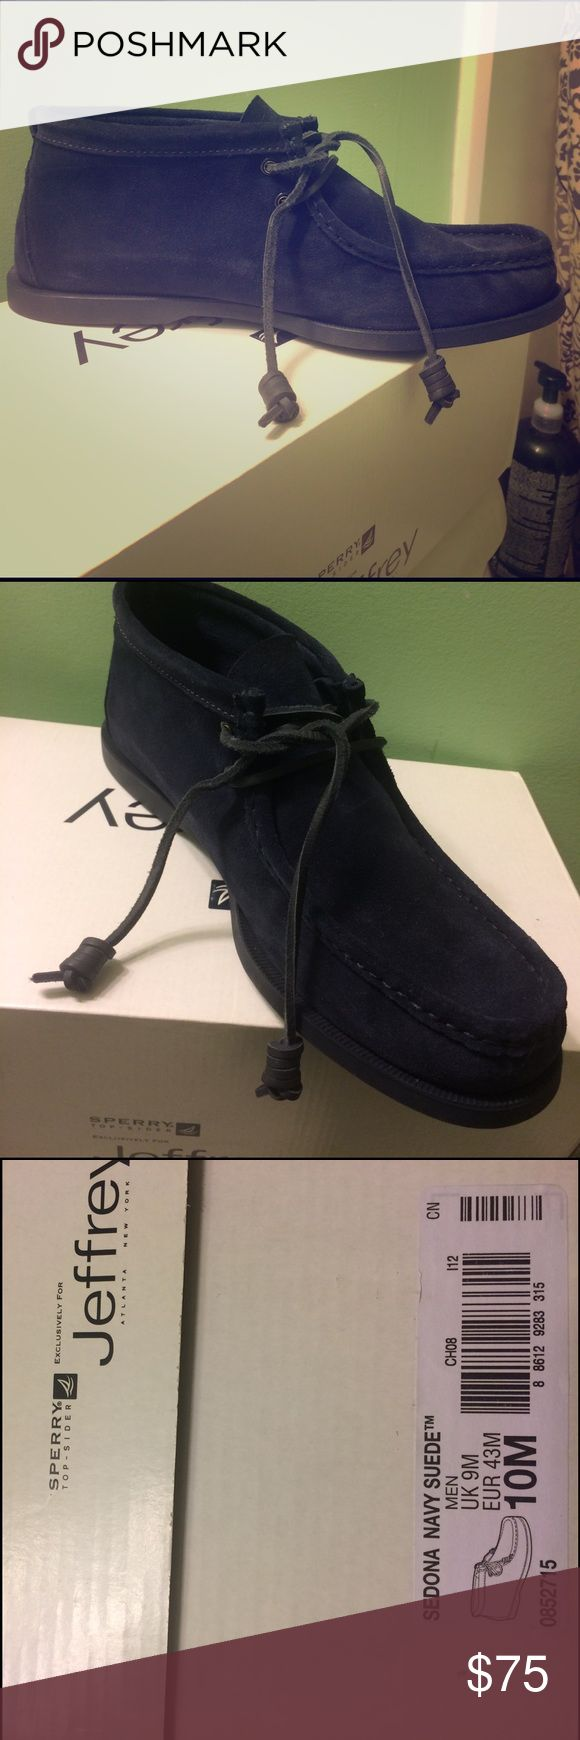 Sperry Navy suede moccasin high tops. Beautiful navy blue suede moccasin high tops! Still new in box! Made by Sperry for Jeffrey.                                                               Mens US 10M, UK9M, EUR10M Sperry Shoes Boots